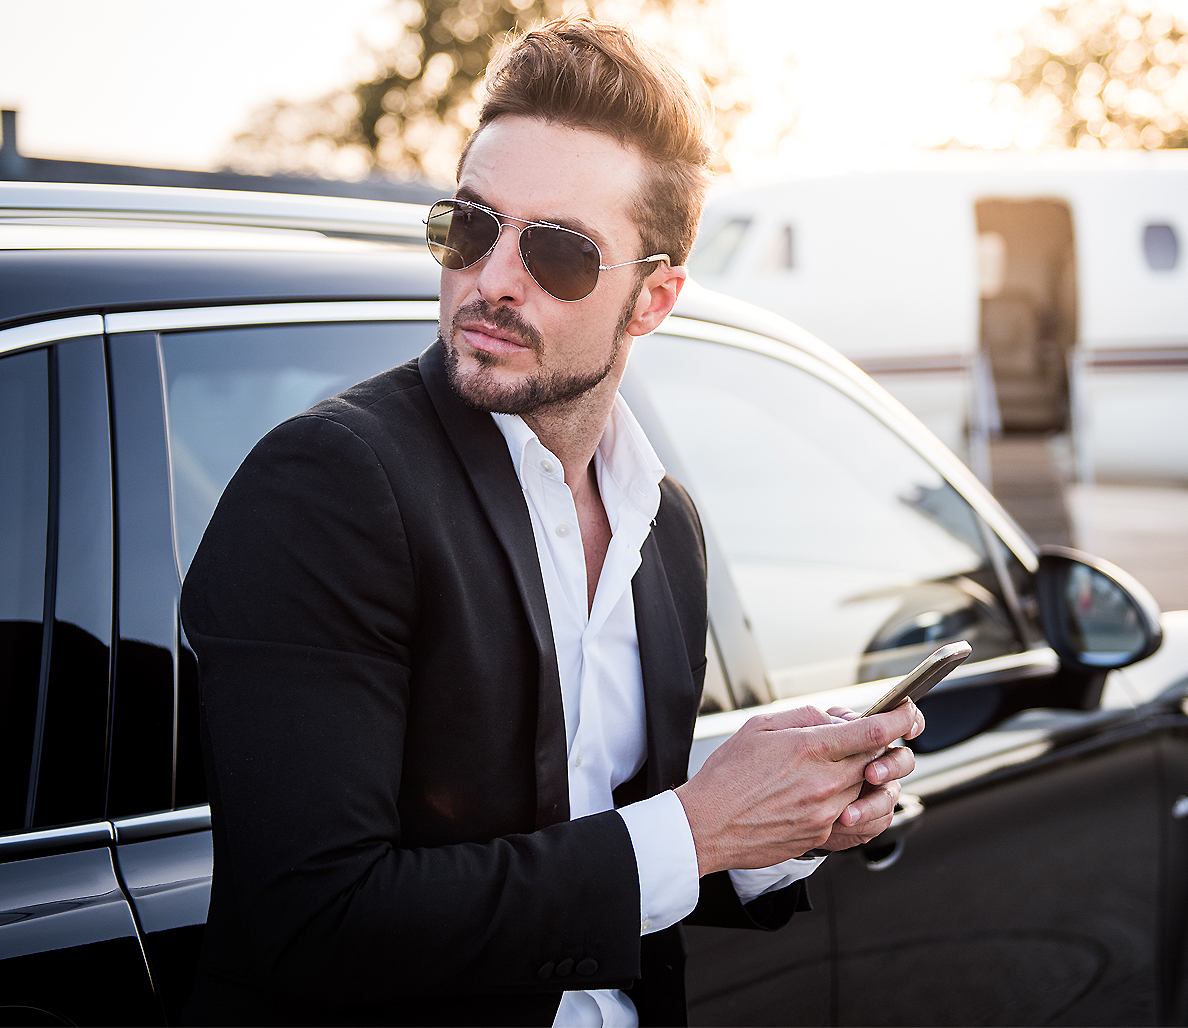 c11751035d1cb Couldn t spring for the high-end styles in our previous sunglasses round up  Opens a New Window.   Don t sweat it. We created this affordable version so  ...